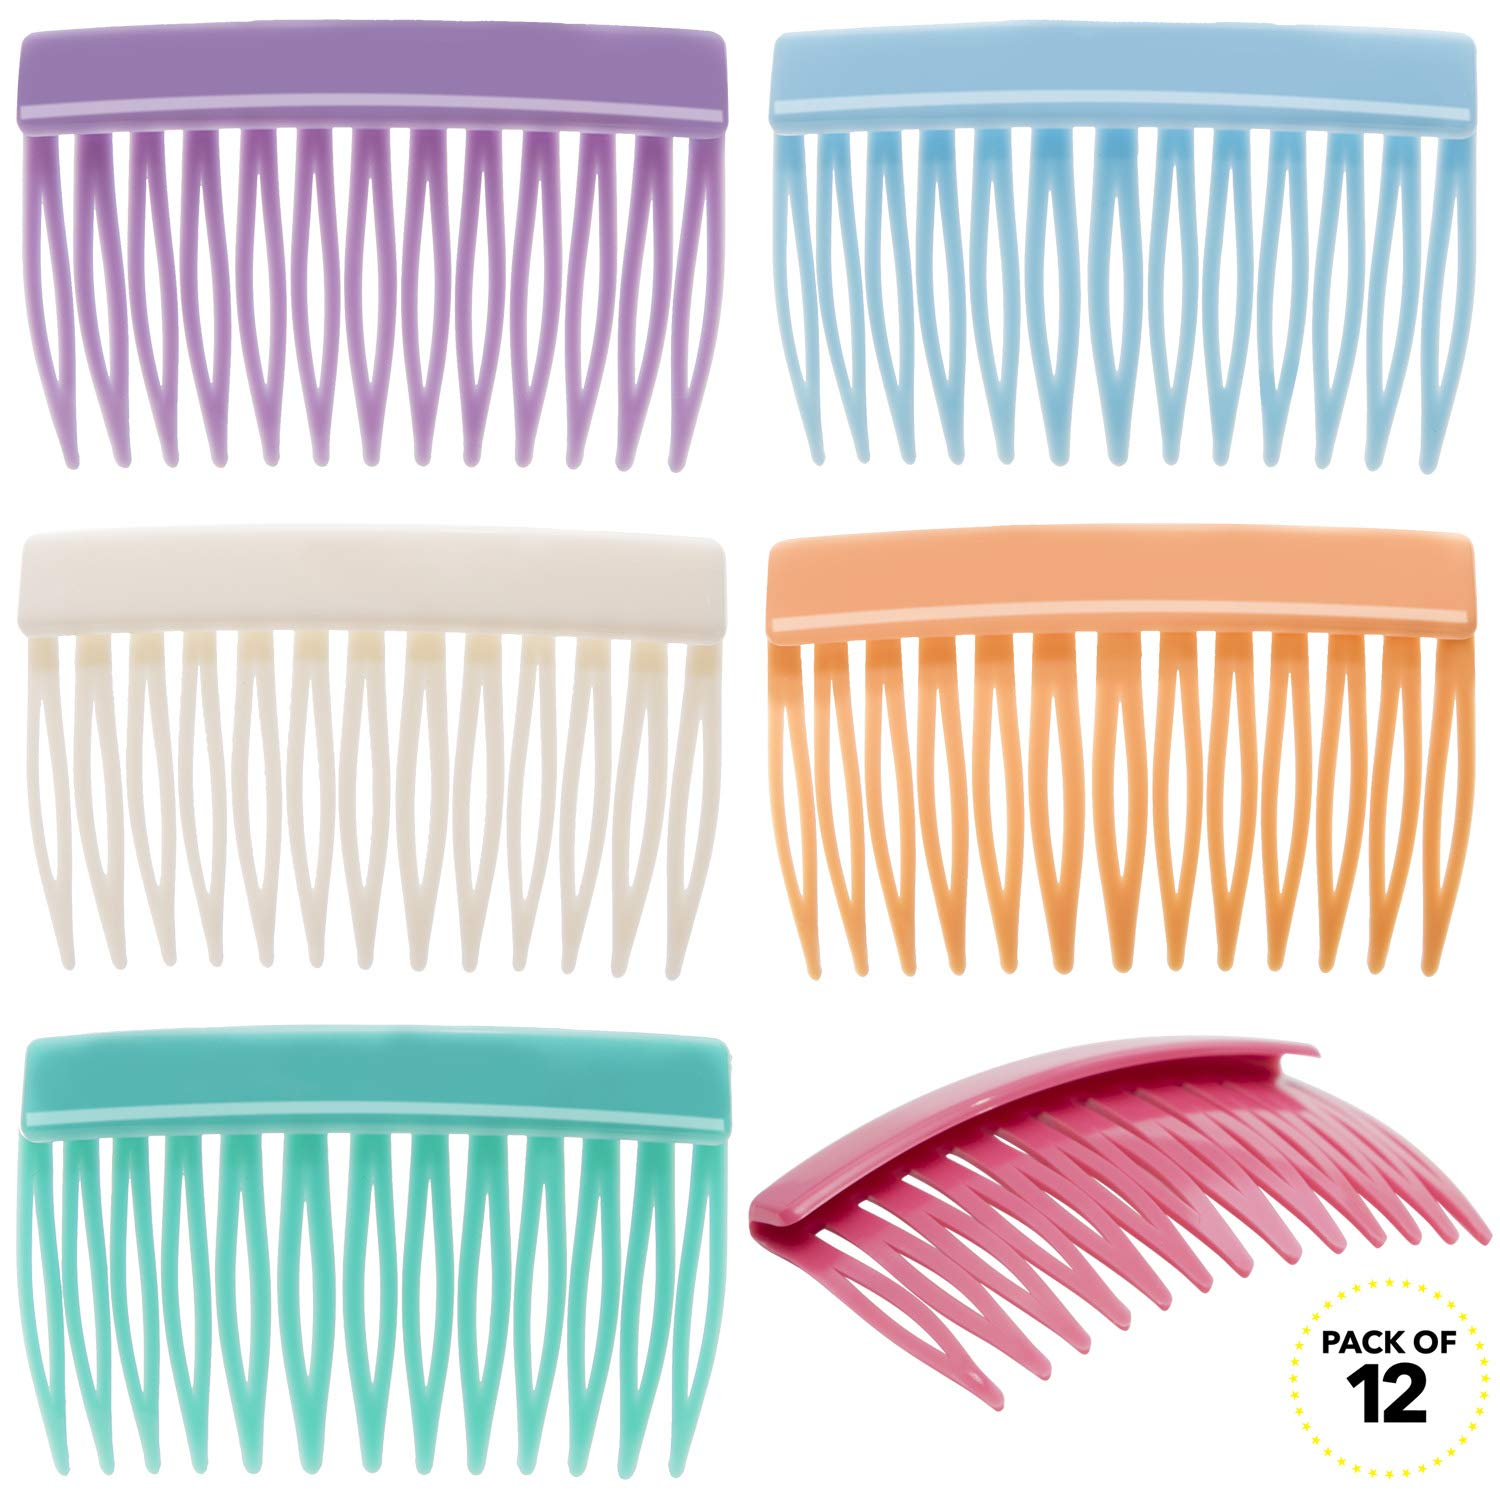 RC ROCHE ORNAMENT 12 Pcs Womens Girls Classic Side Slide Comb Premium Hair Accessory Pin Wide Teeth Solid Plastic Combs Bridal Pins Beauty Fashion Accessories, Medium Pastel Multicolor : Beauty